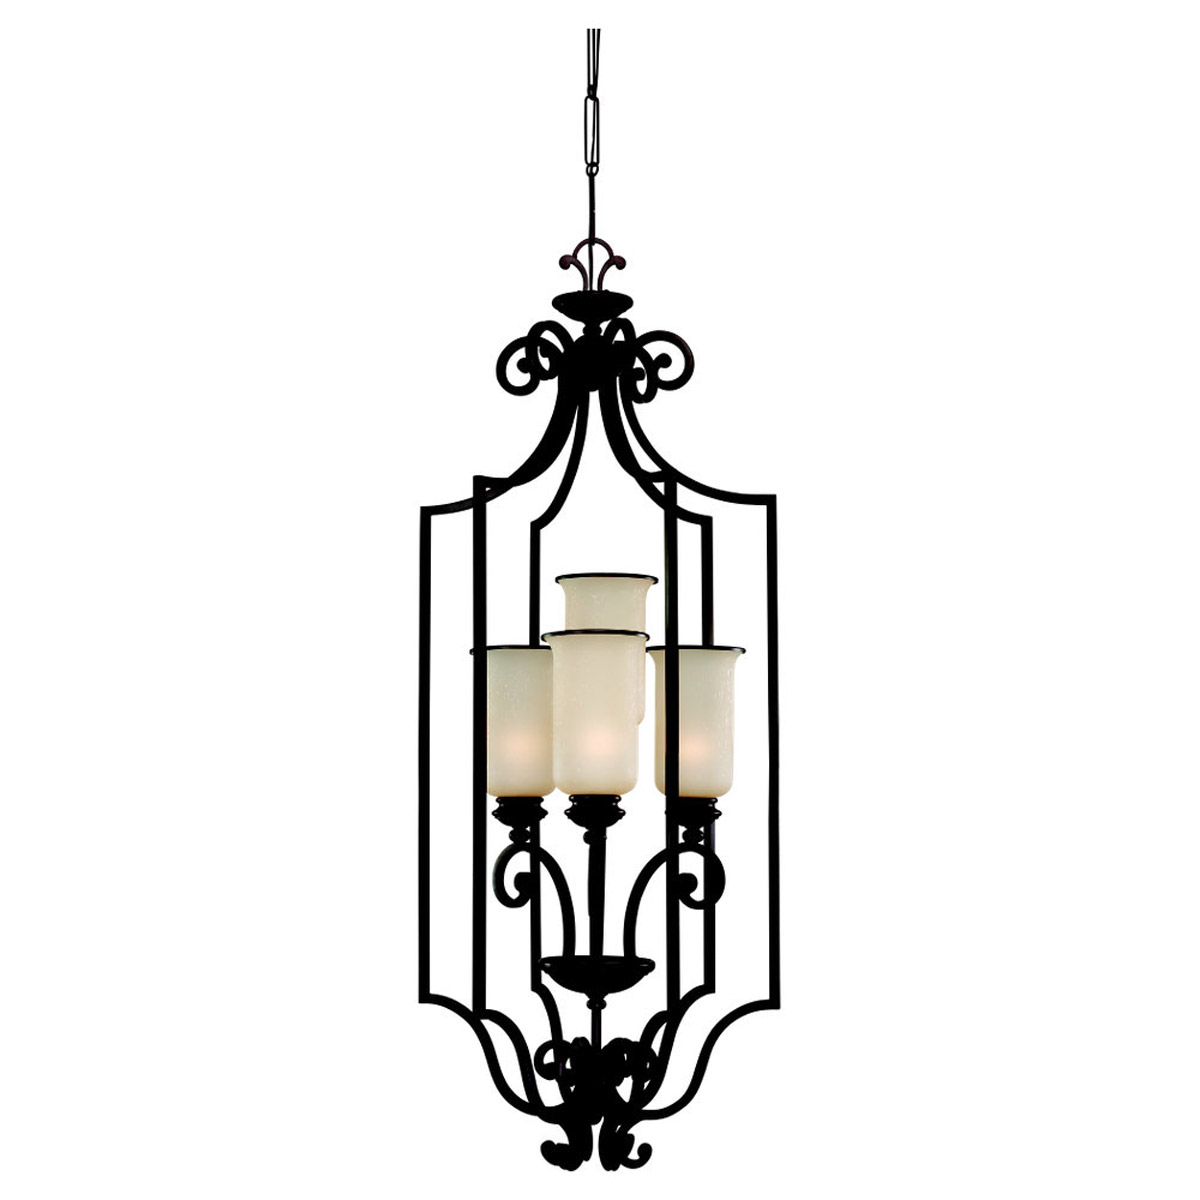 Sea Gull Lighting Acadia 4 Light Foyer Pendant in Misted Bronze 51146-814 photo